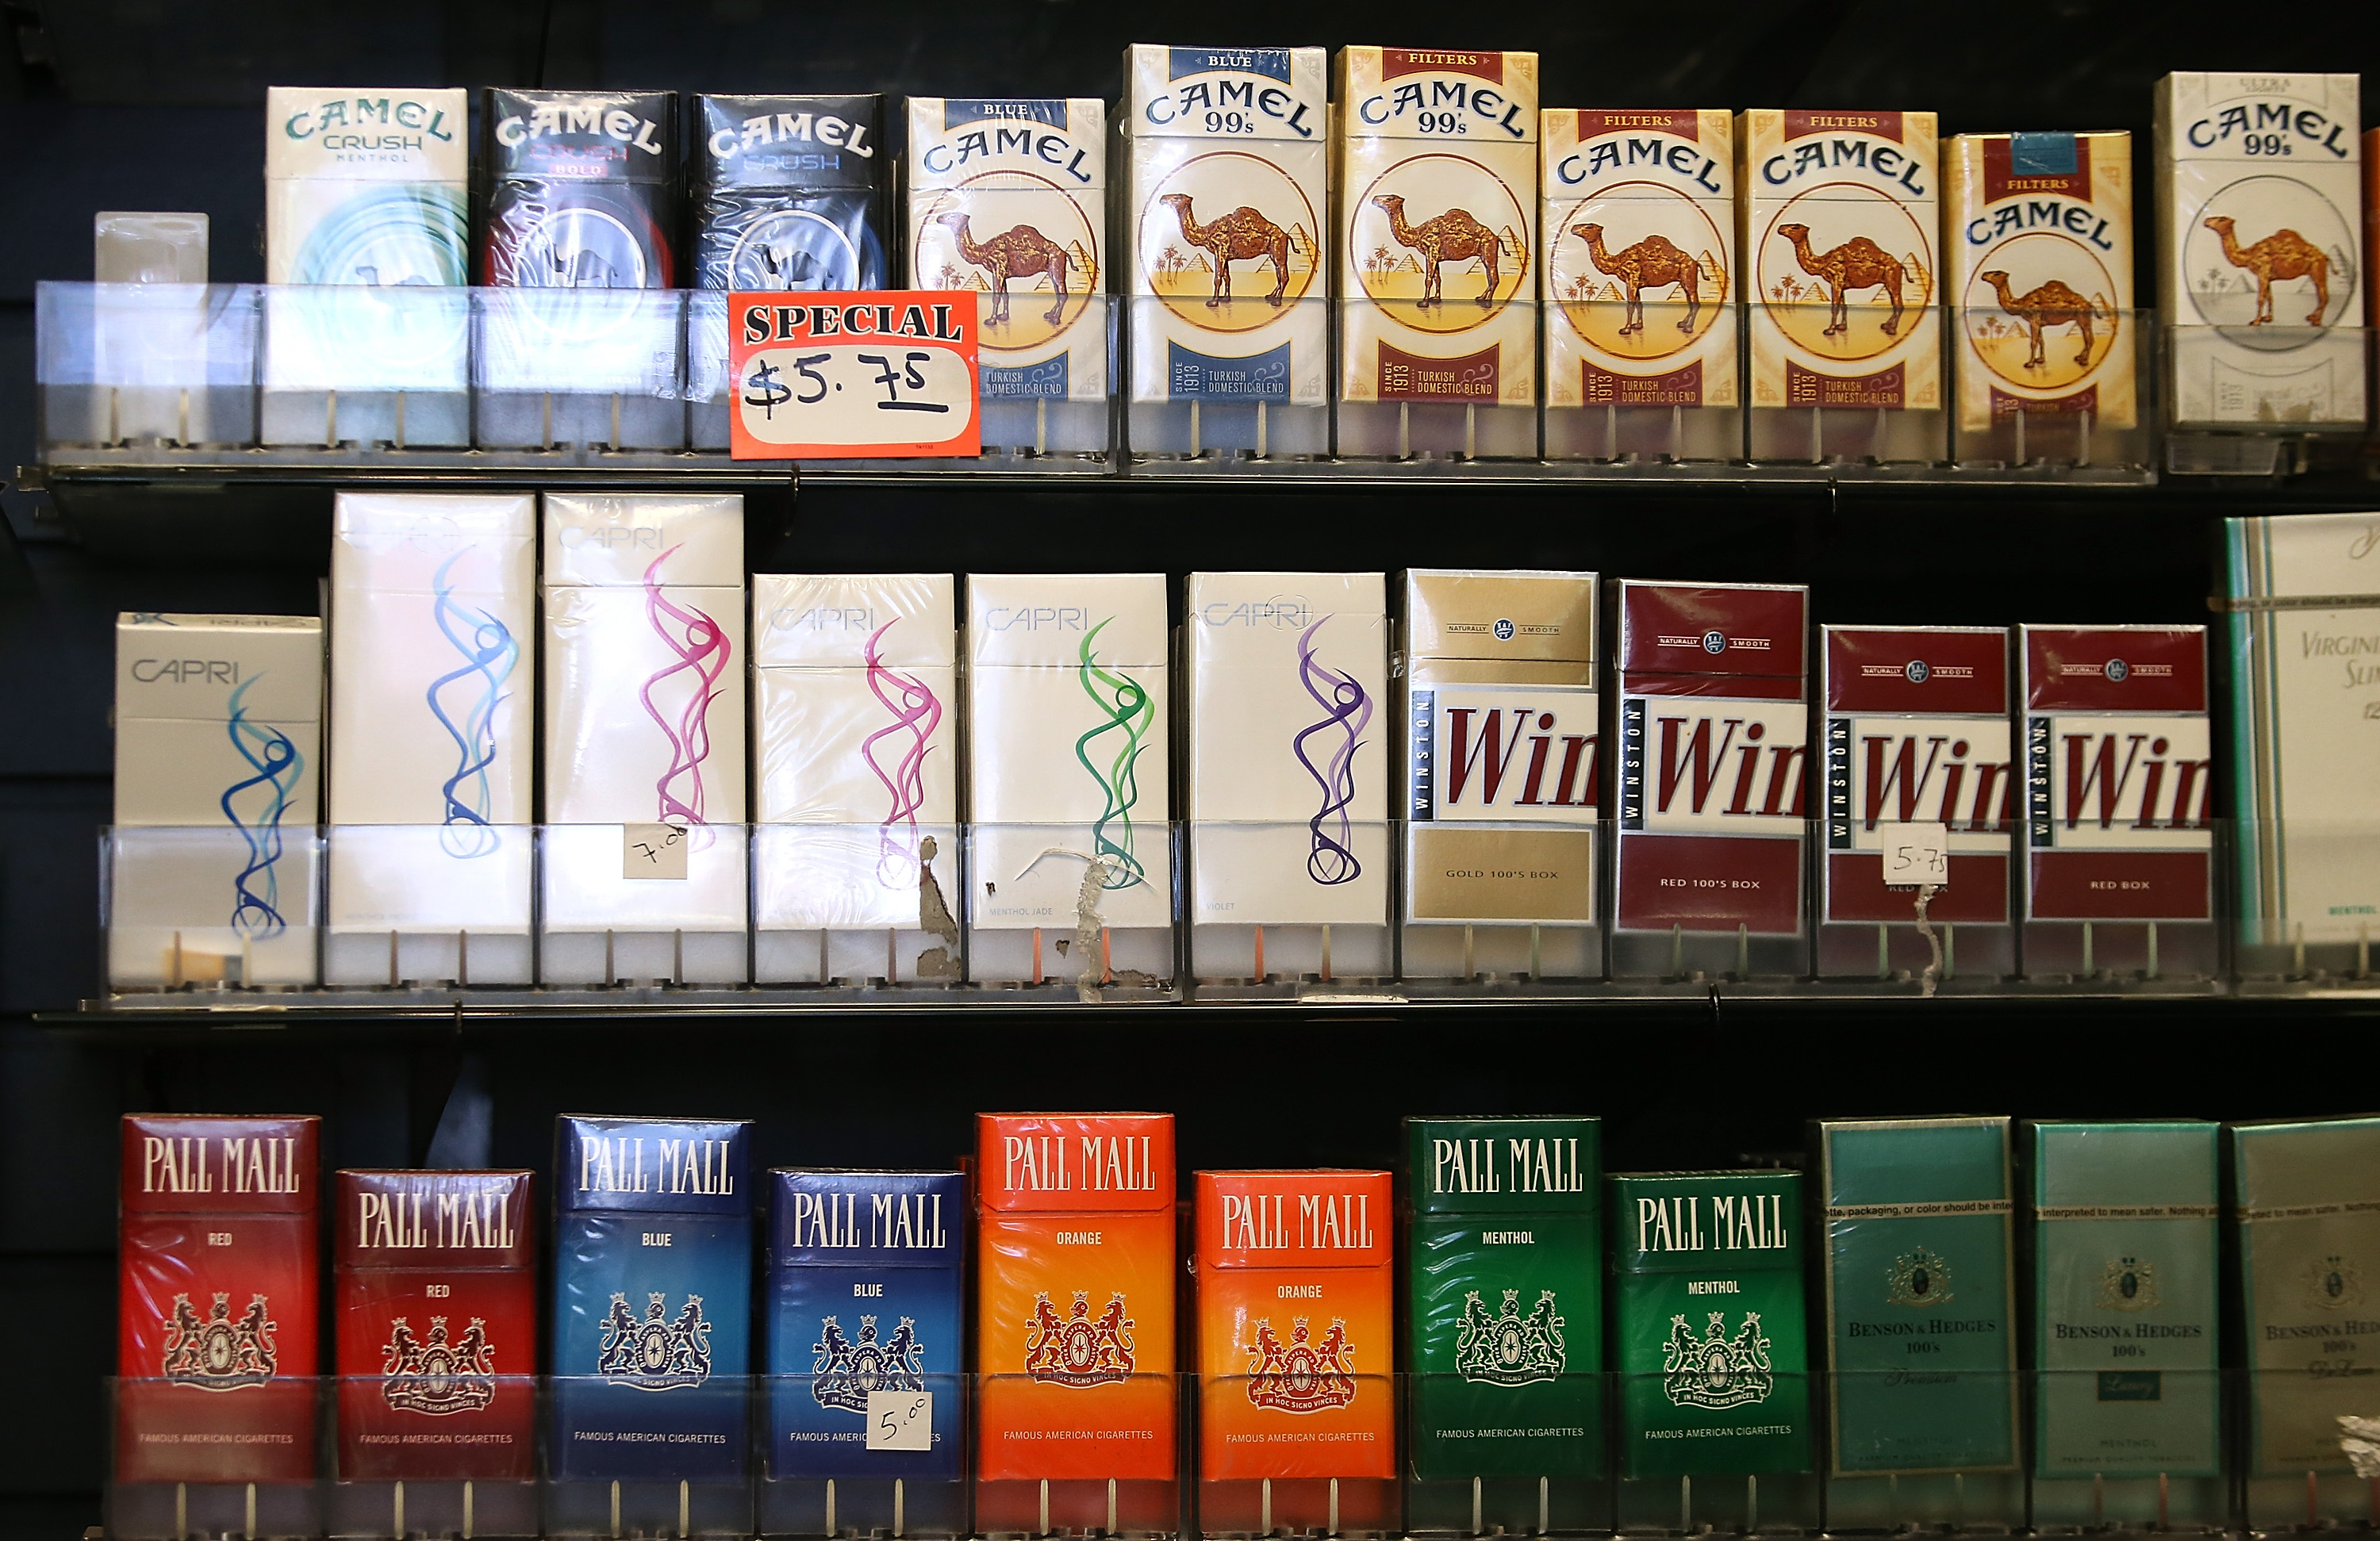 Tobacco Giant Reynolds American In Talks To Purchase Lorillard, Maker Of Newport Cigarettes